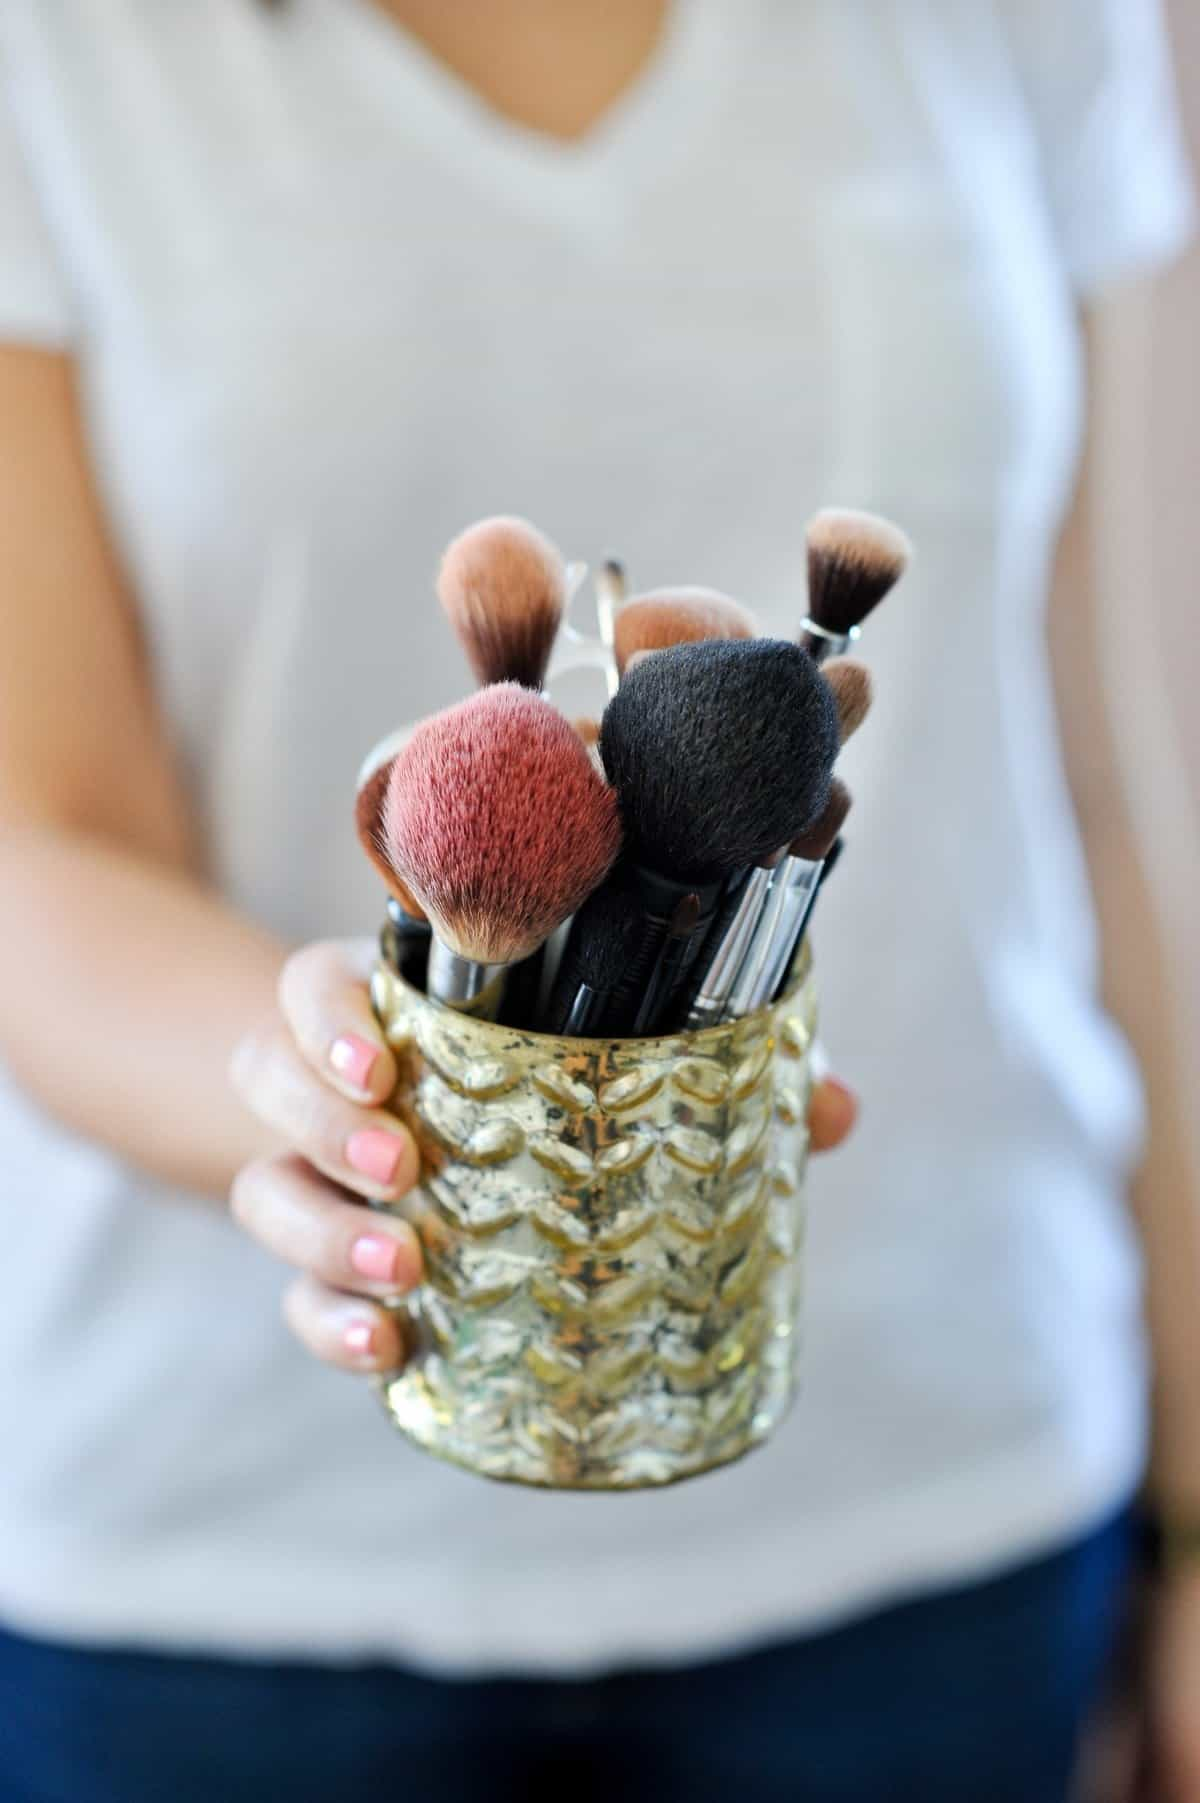 favorite makeup brushes - @mystylevita - 1